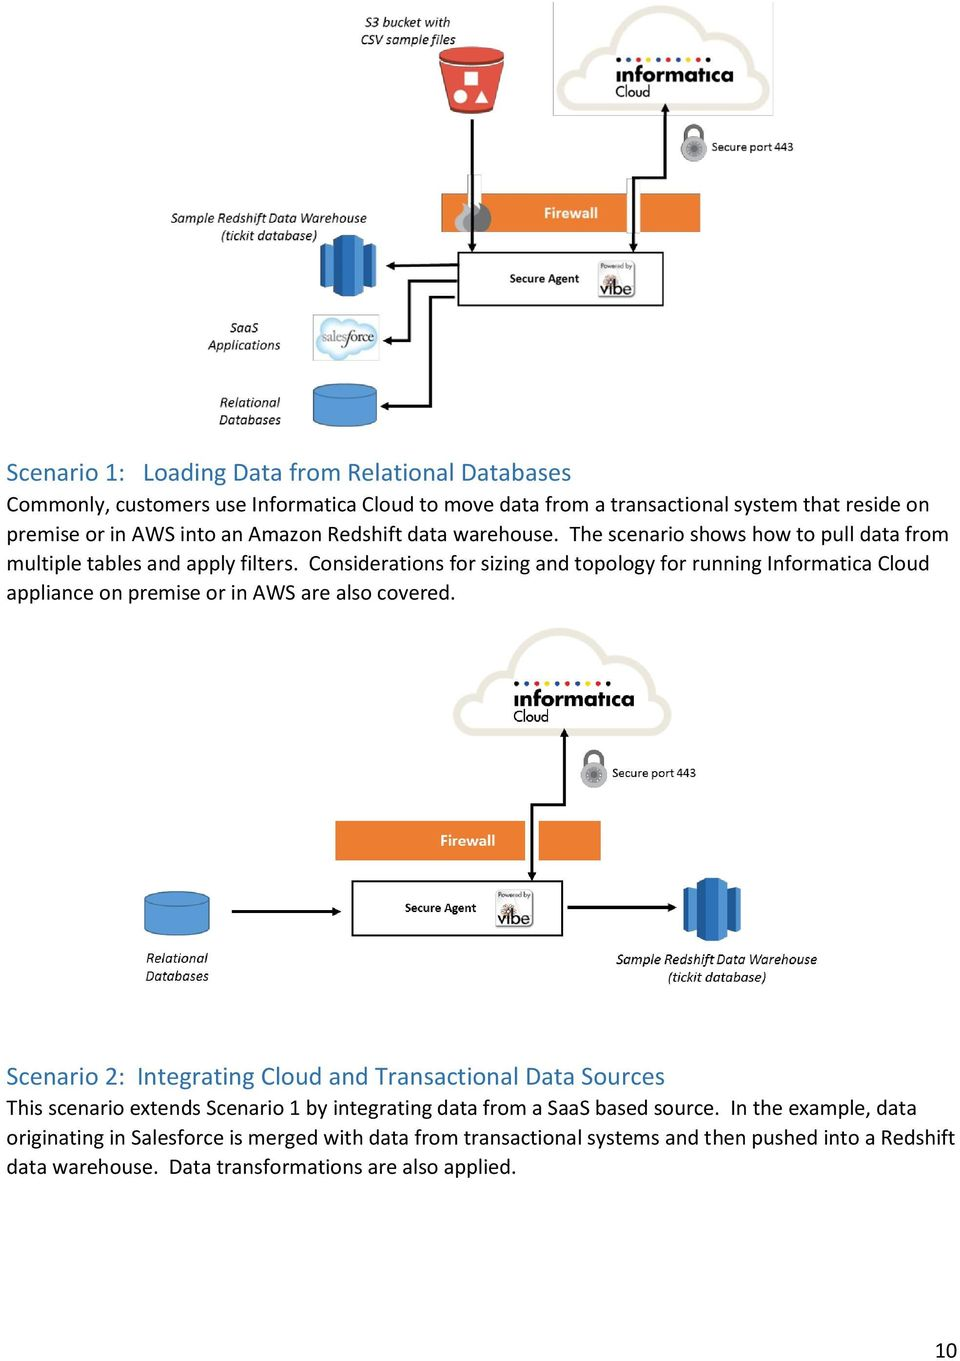 Considerations for sizing and topology for running Informatica Cloud appliance on premise or in AWS are also covered.